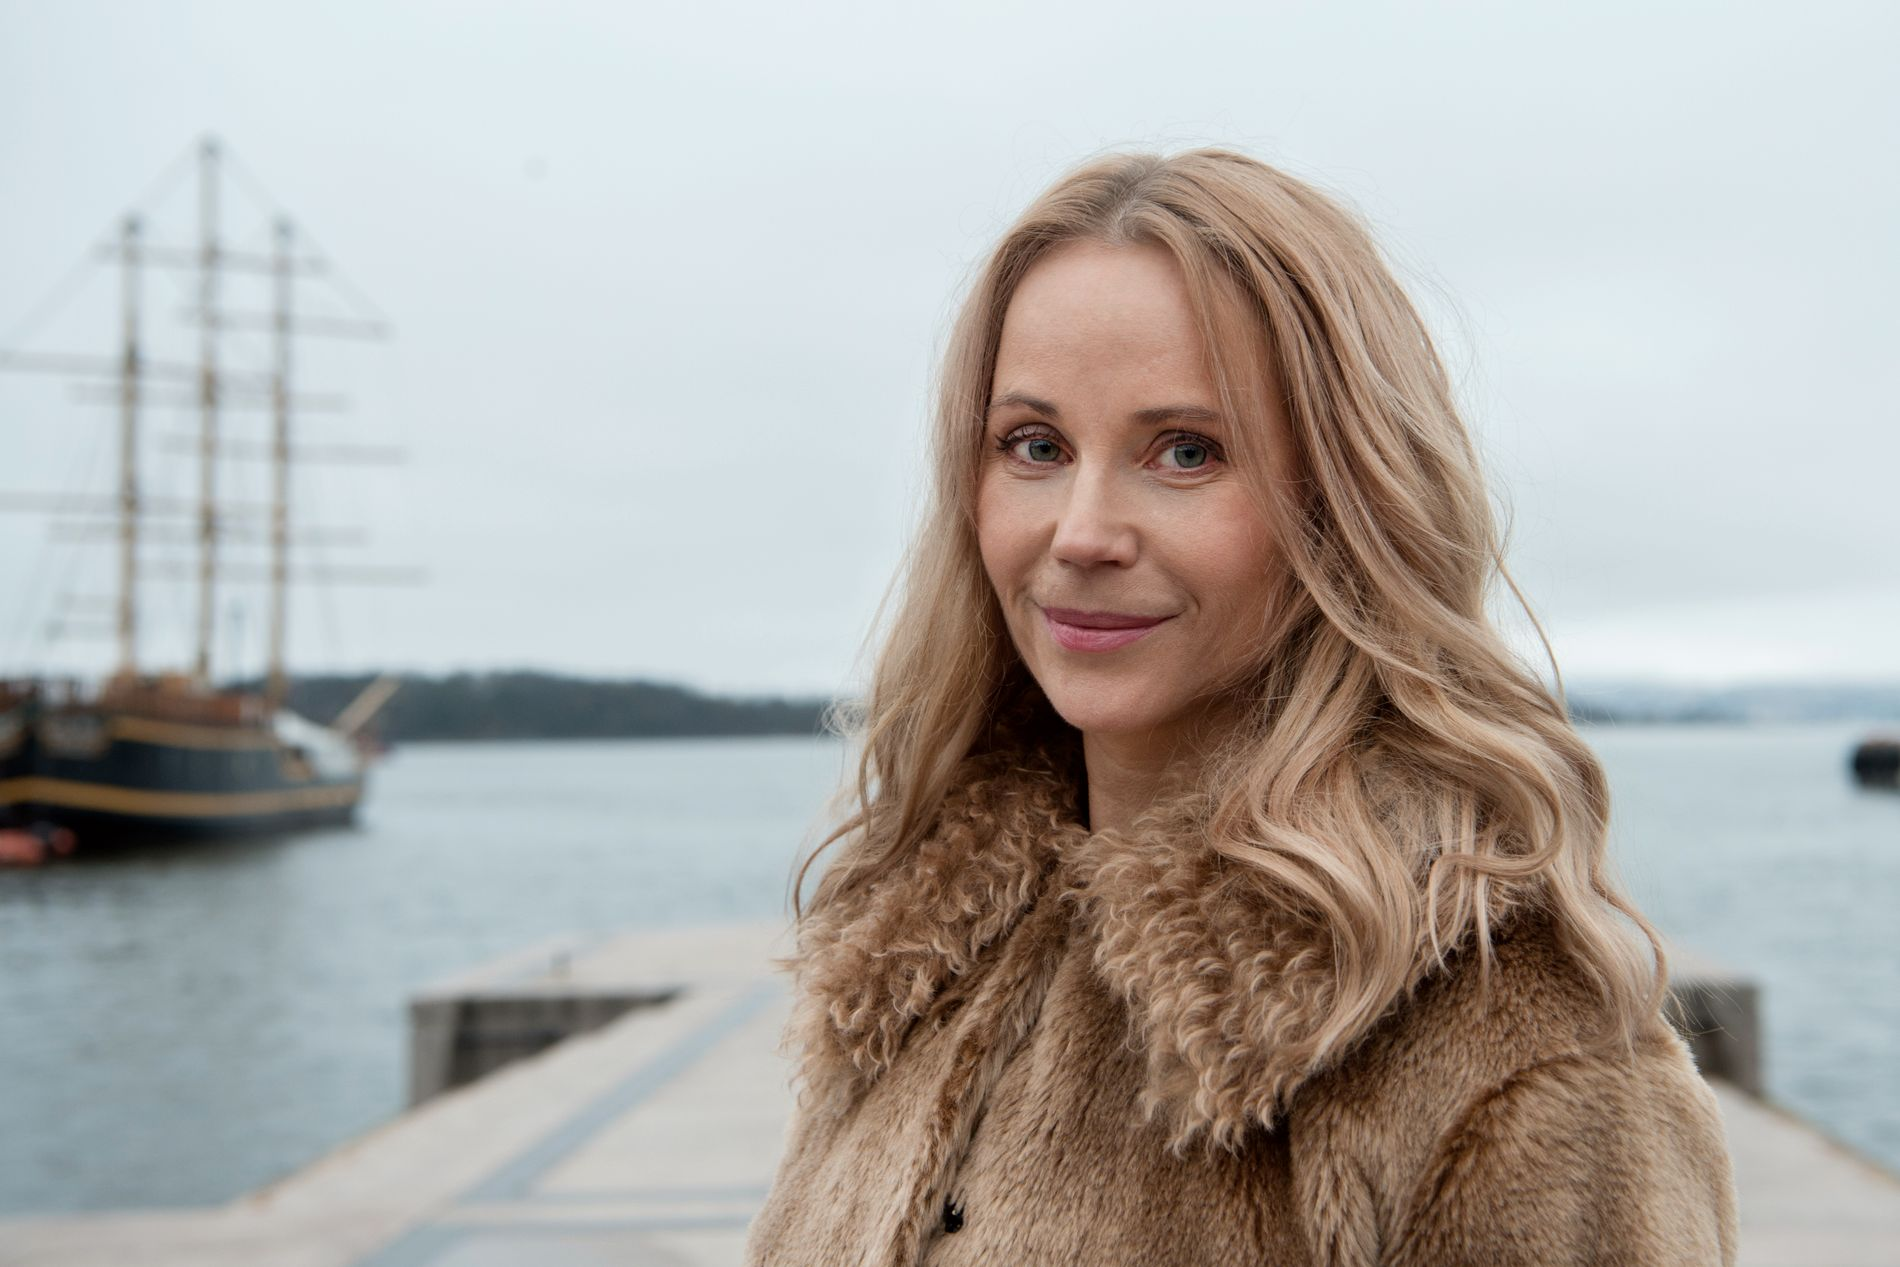 READY FOR NEW DRAMASERY: Sofia Helin, here in connection with the news that she must play Crown Princess Märtha in